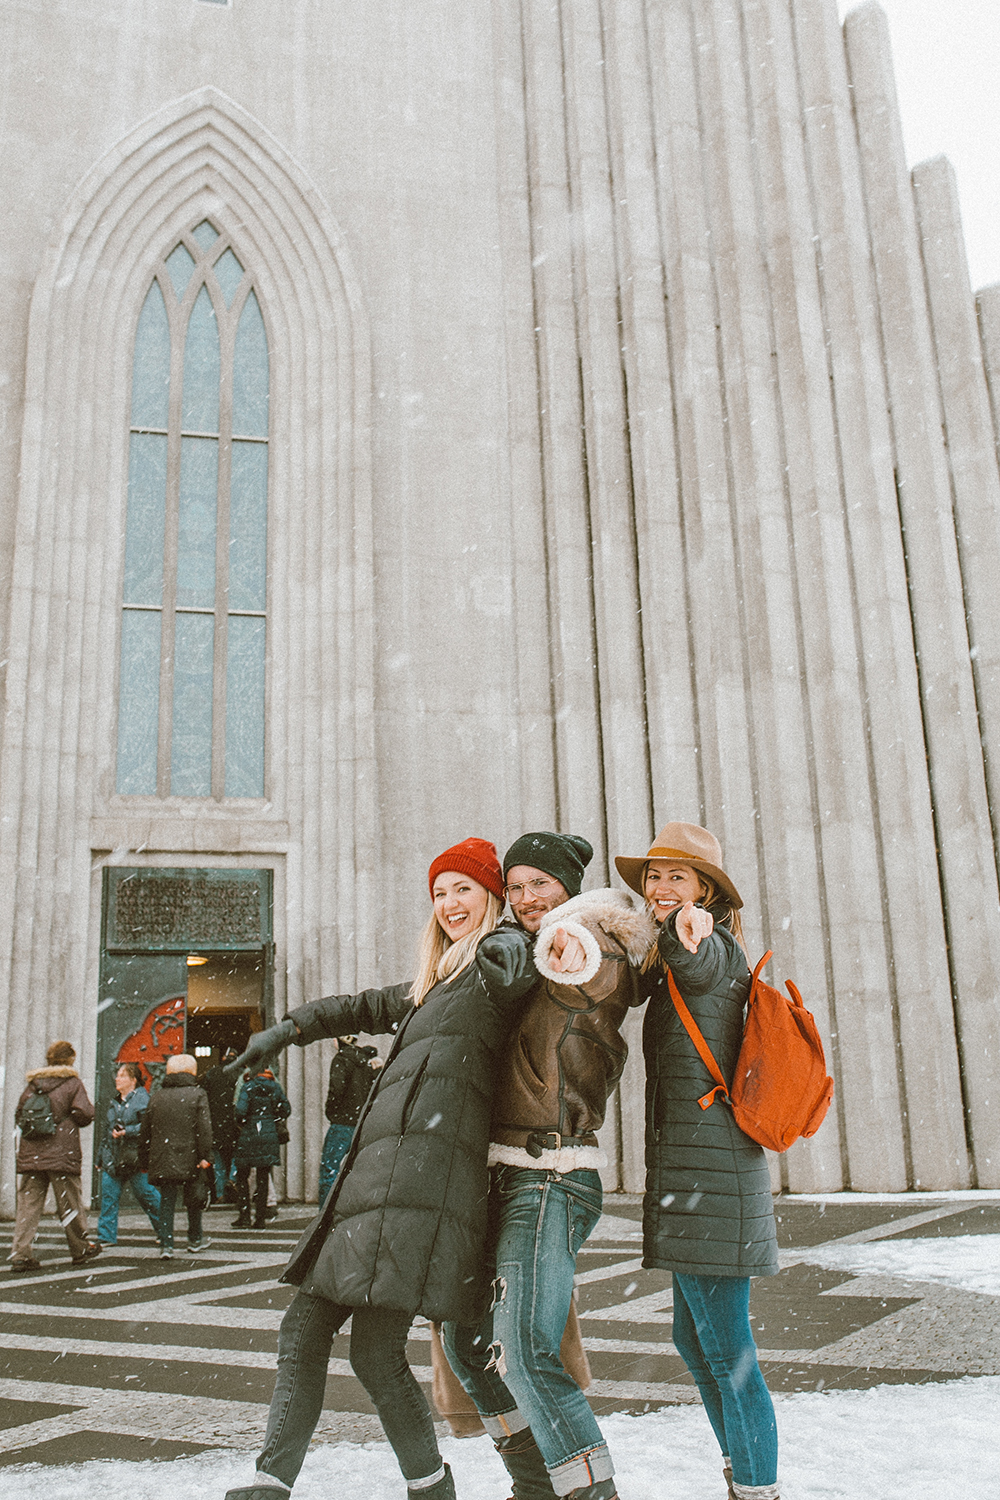 1-livvyland-blog-olivia-watson-travel-lifestyle-blogger-iceland-road-trip-what-to-do-pack-reykjavik-noken-travel-guide-Hallgrimskirkja-church-best-friends-8